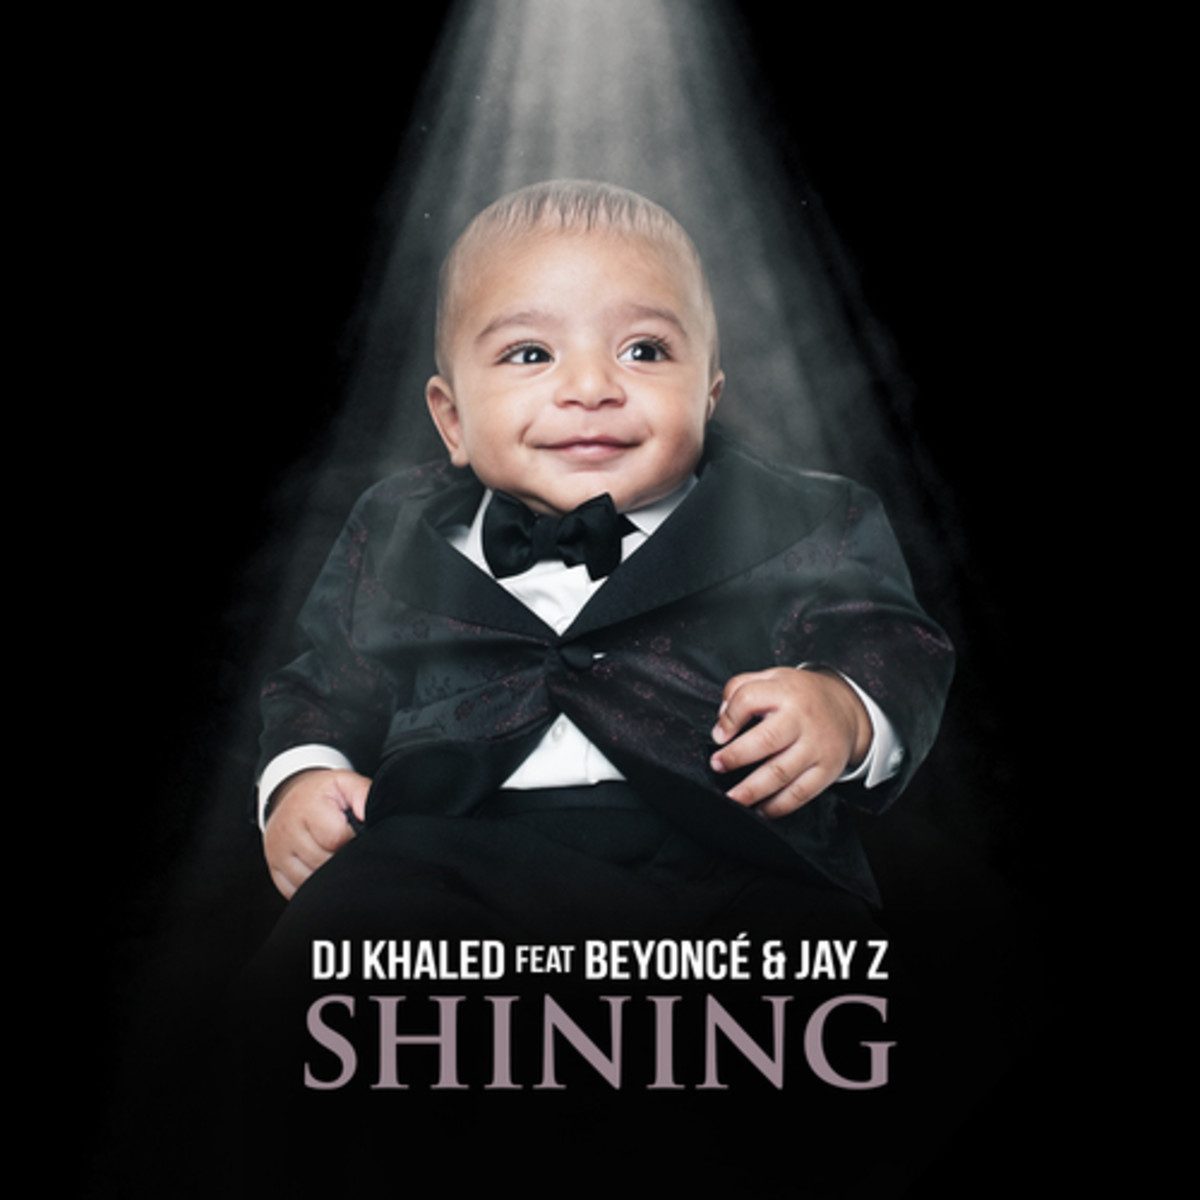 dj-khaled-shining.jpeg